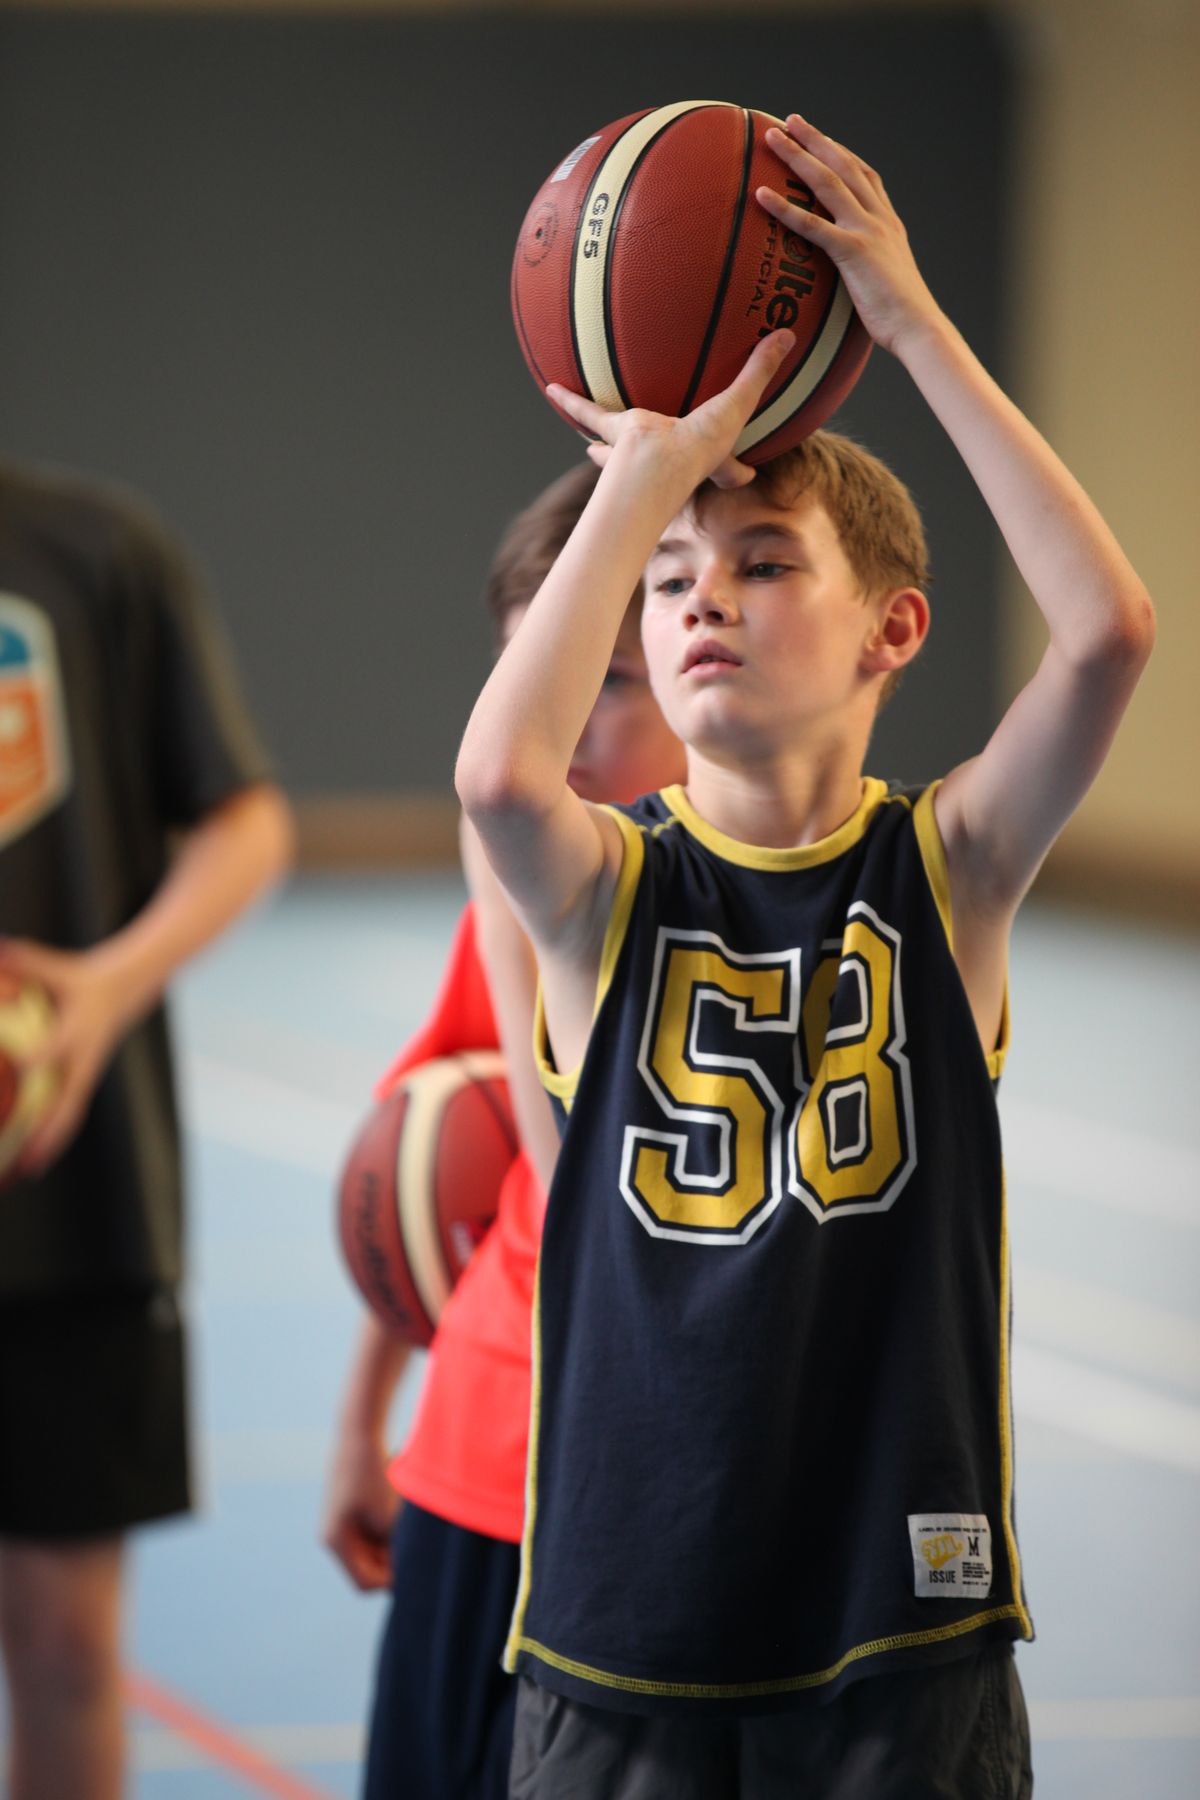 Sommer_BBall-Camp_2014_Tag 3 (16)